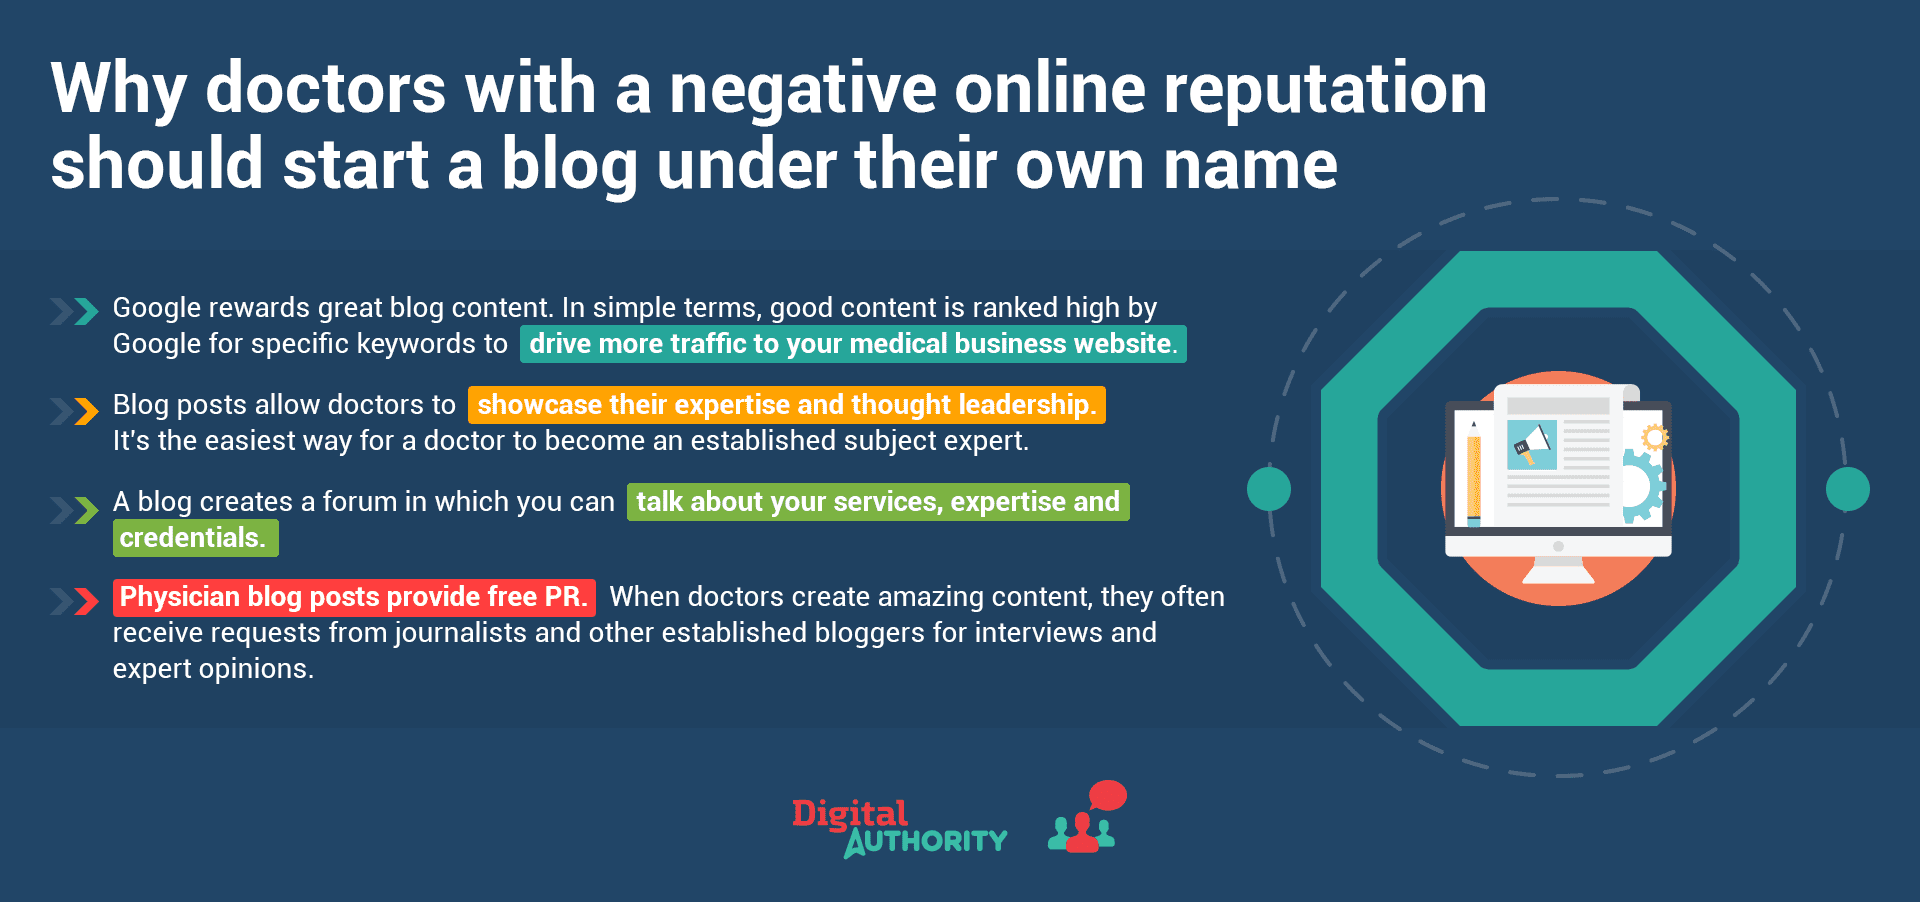 Why doctors with a negative online reputation should start a blog under their own name. Google rewards great blog content. Blog posts allow doctors to showcase their expertise and thought leadership. A blog creates a forum in which you can talk about your services, expertise, and credentials. Physician blog posts provide free PR.